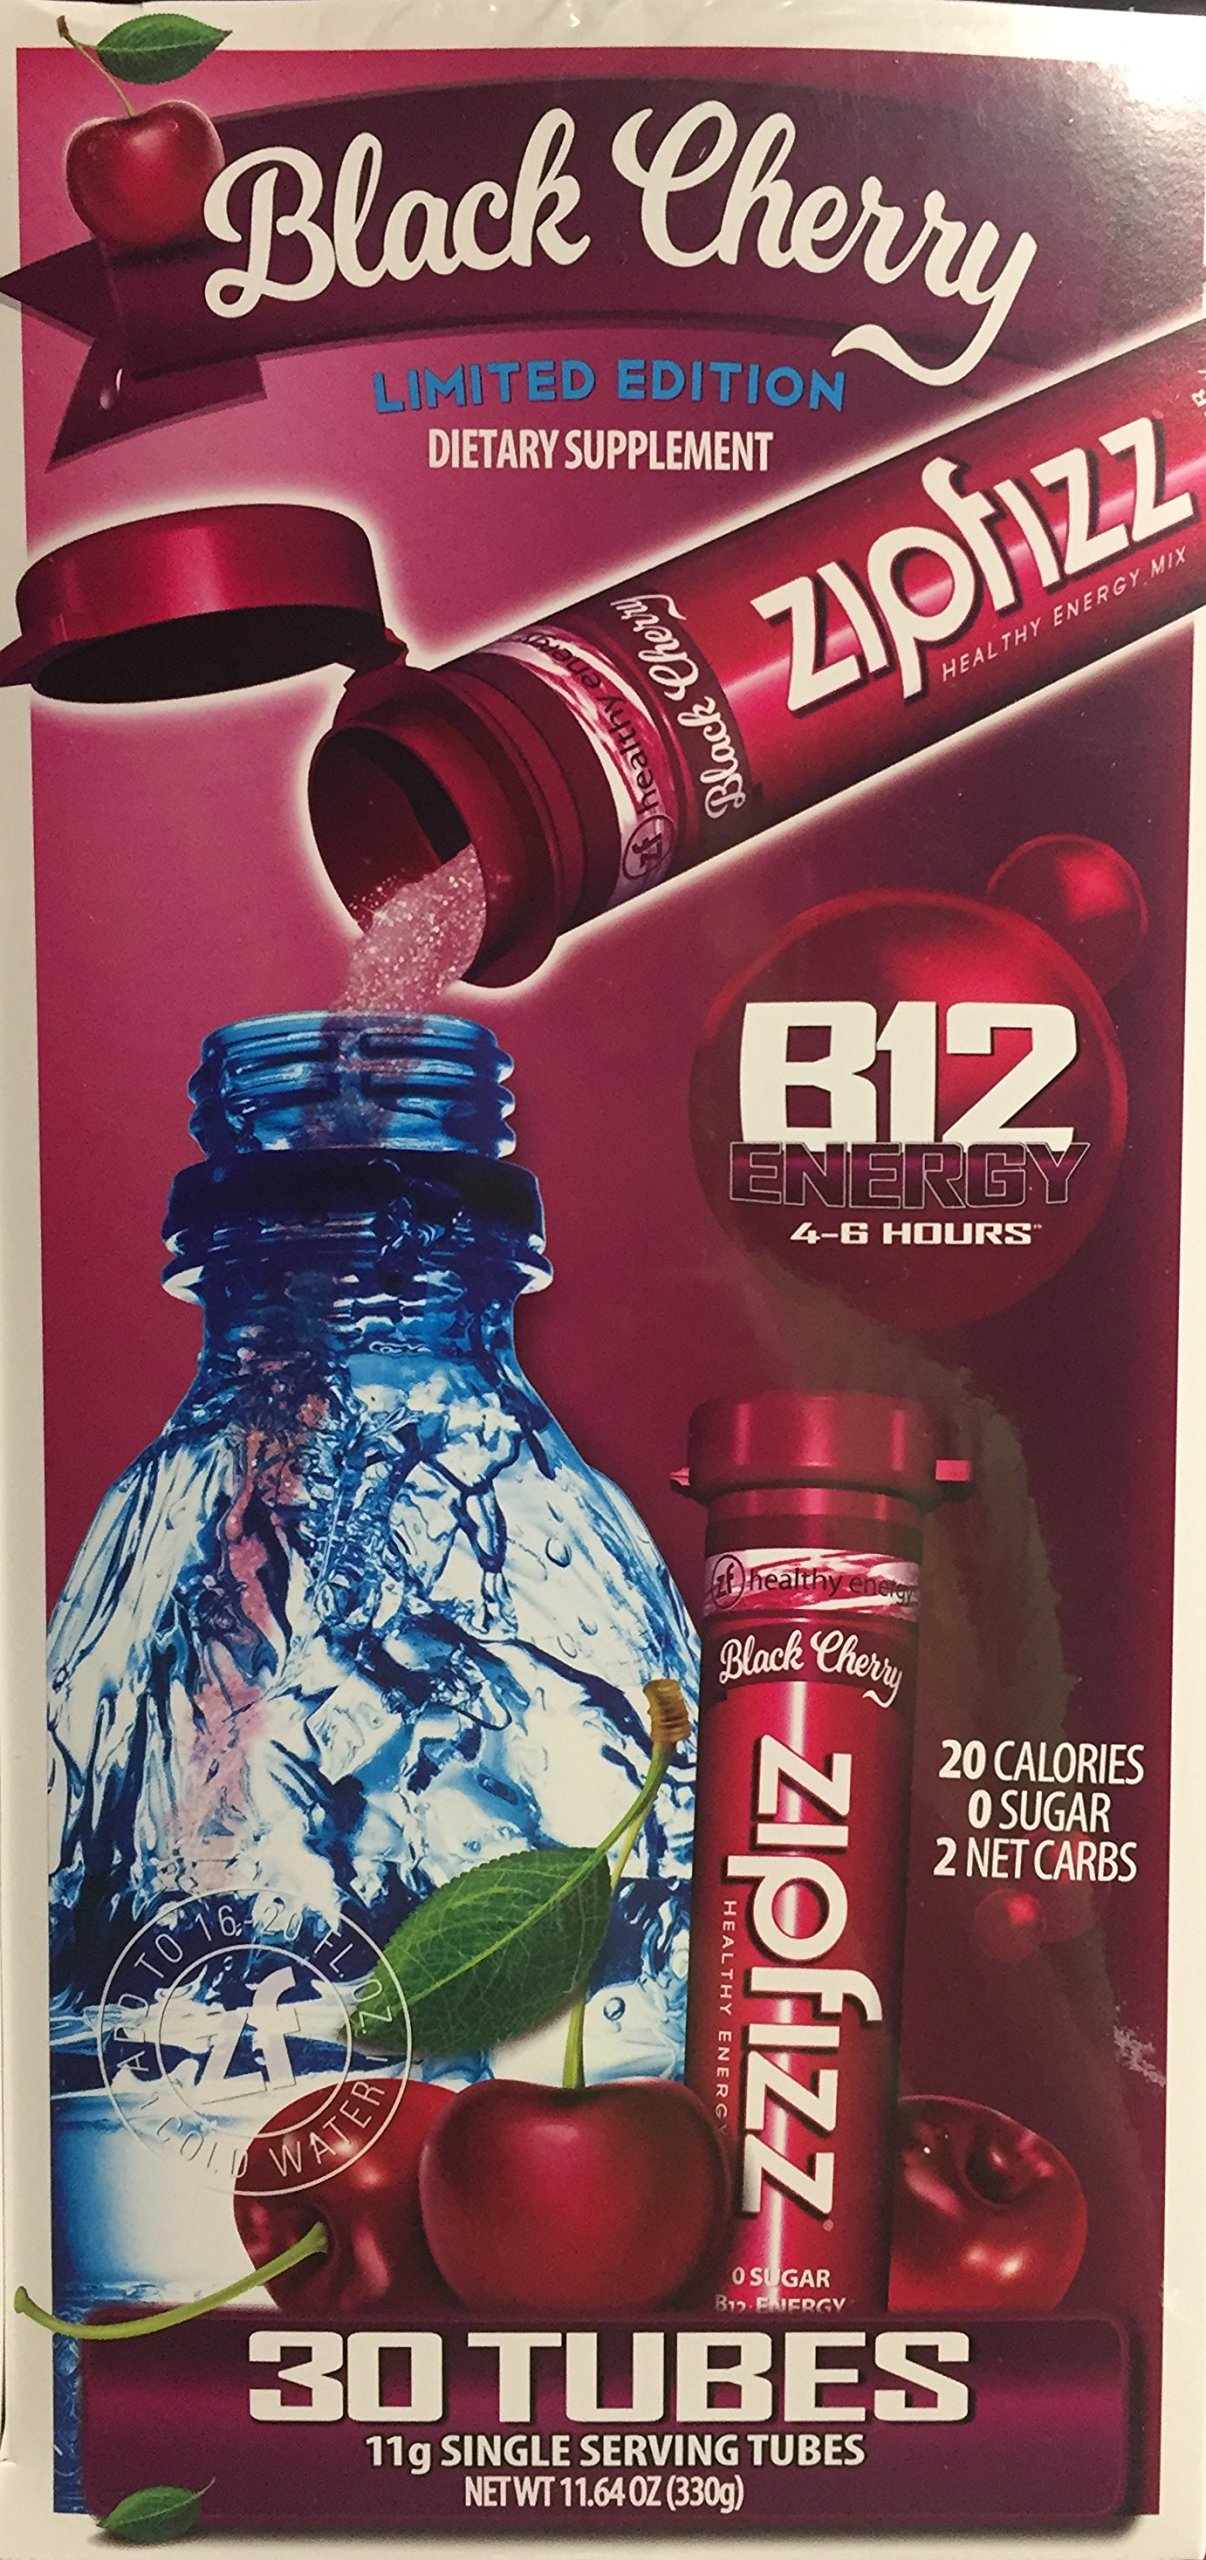 Zipfizz Healthy Energy Drink Mix Black Cherry Limited Edition